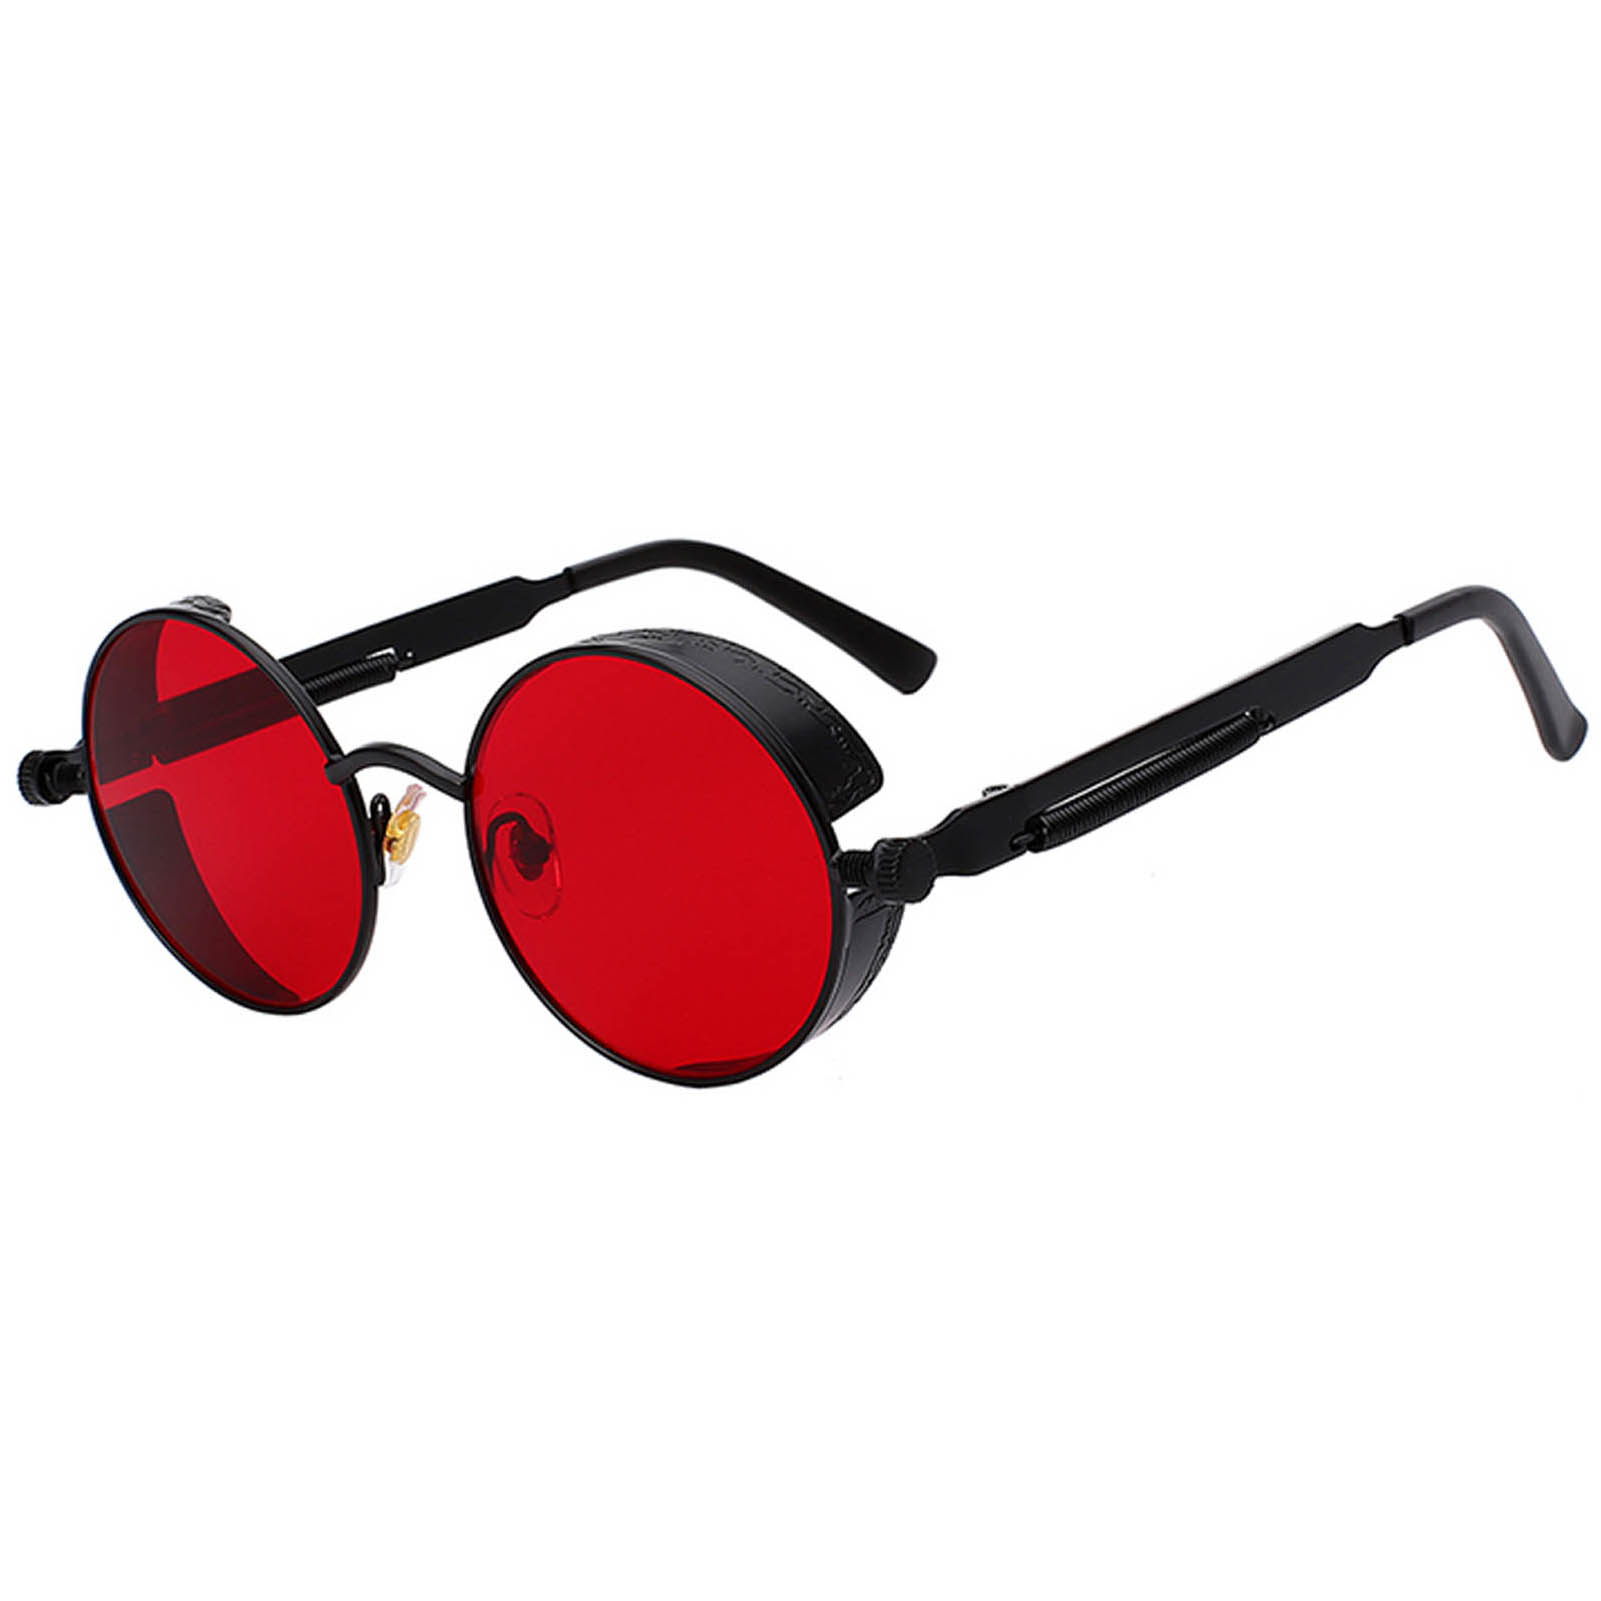 Red And Black Sunglasses  060 c9 steampunk gothic sunglasses metal round circle black frame